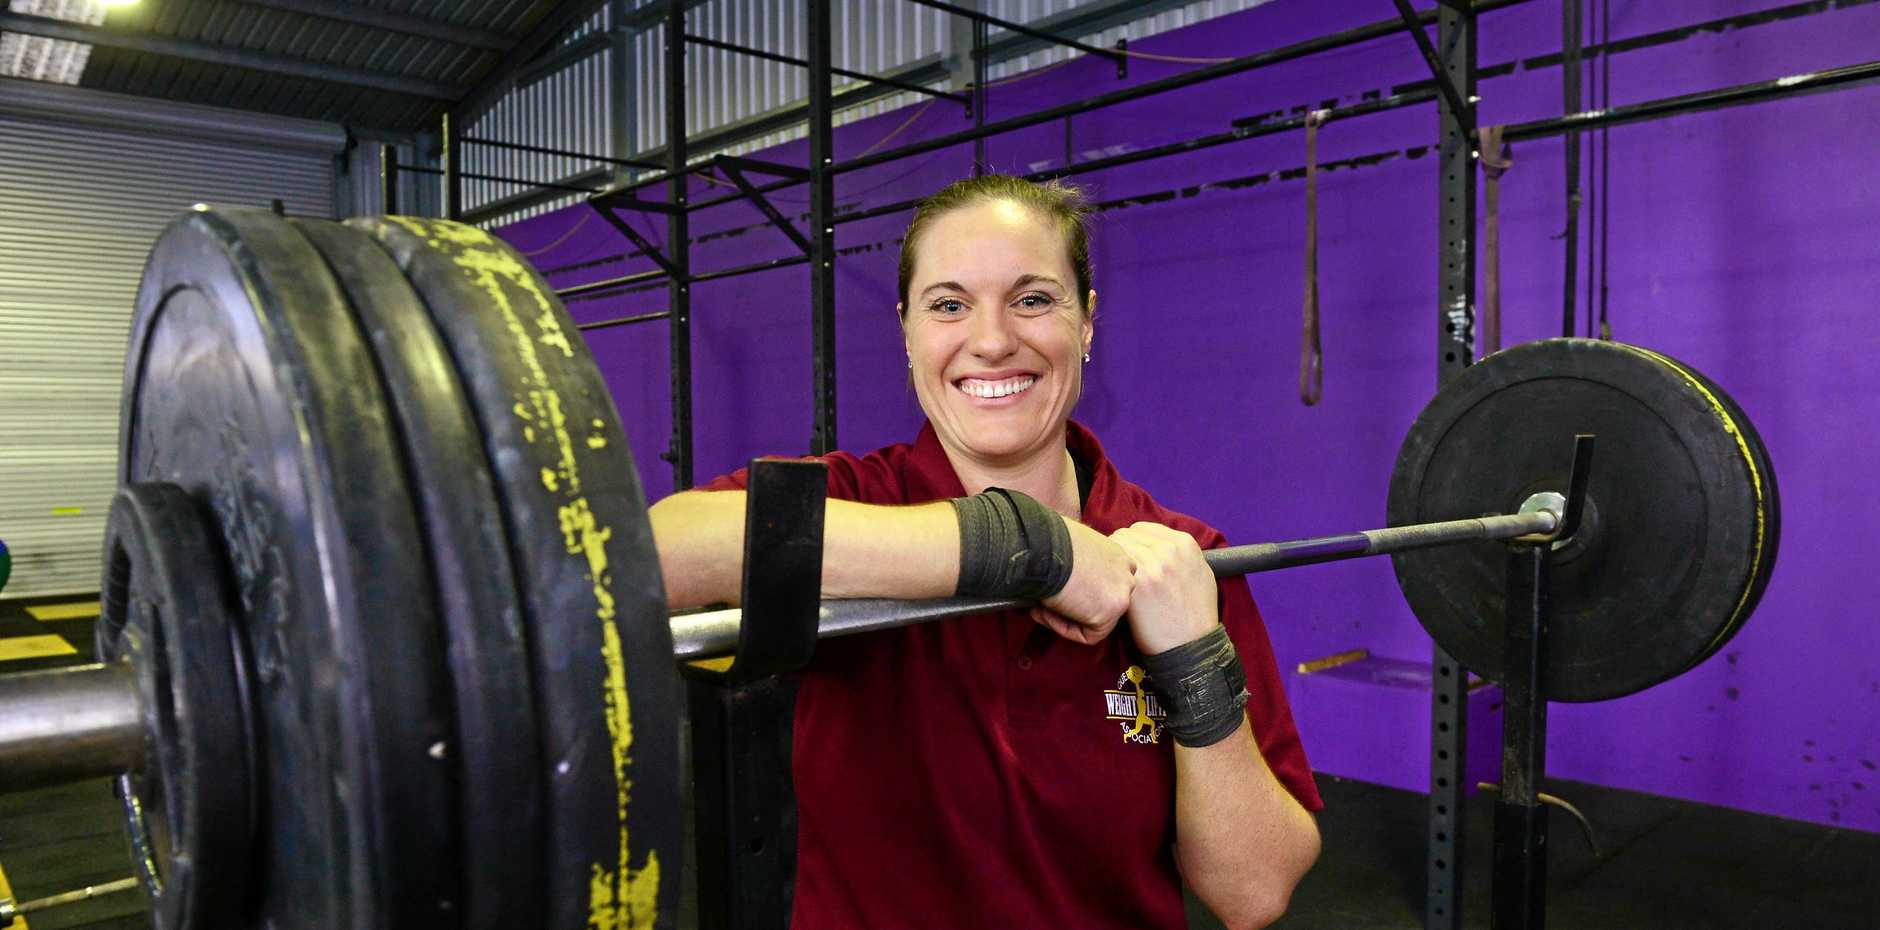 Experienced Ipswich weightlifter Deb Acason is being motivated by her family and past successes at her fifth Commonwealth Games.